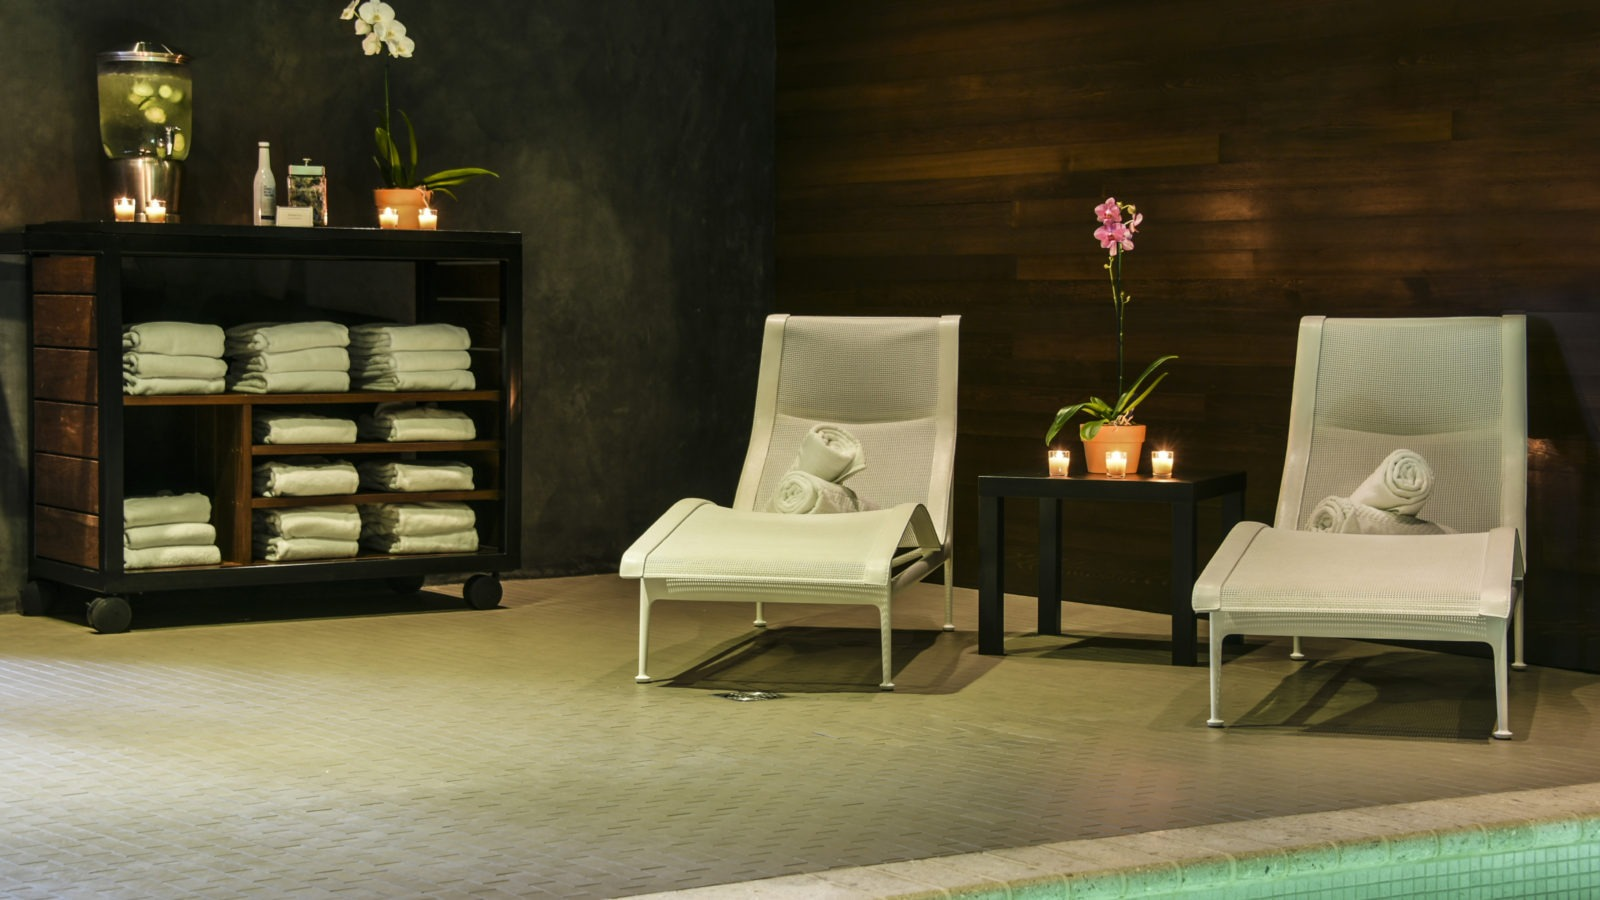 Spa_Relaxation_Streamsong Resort